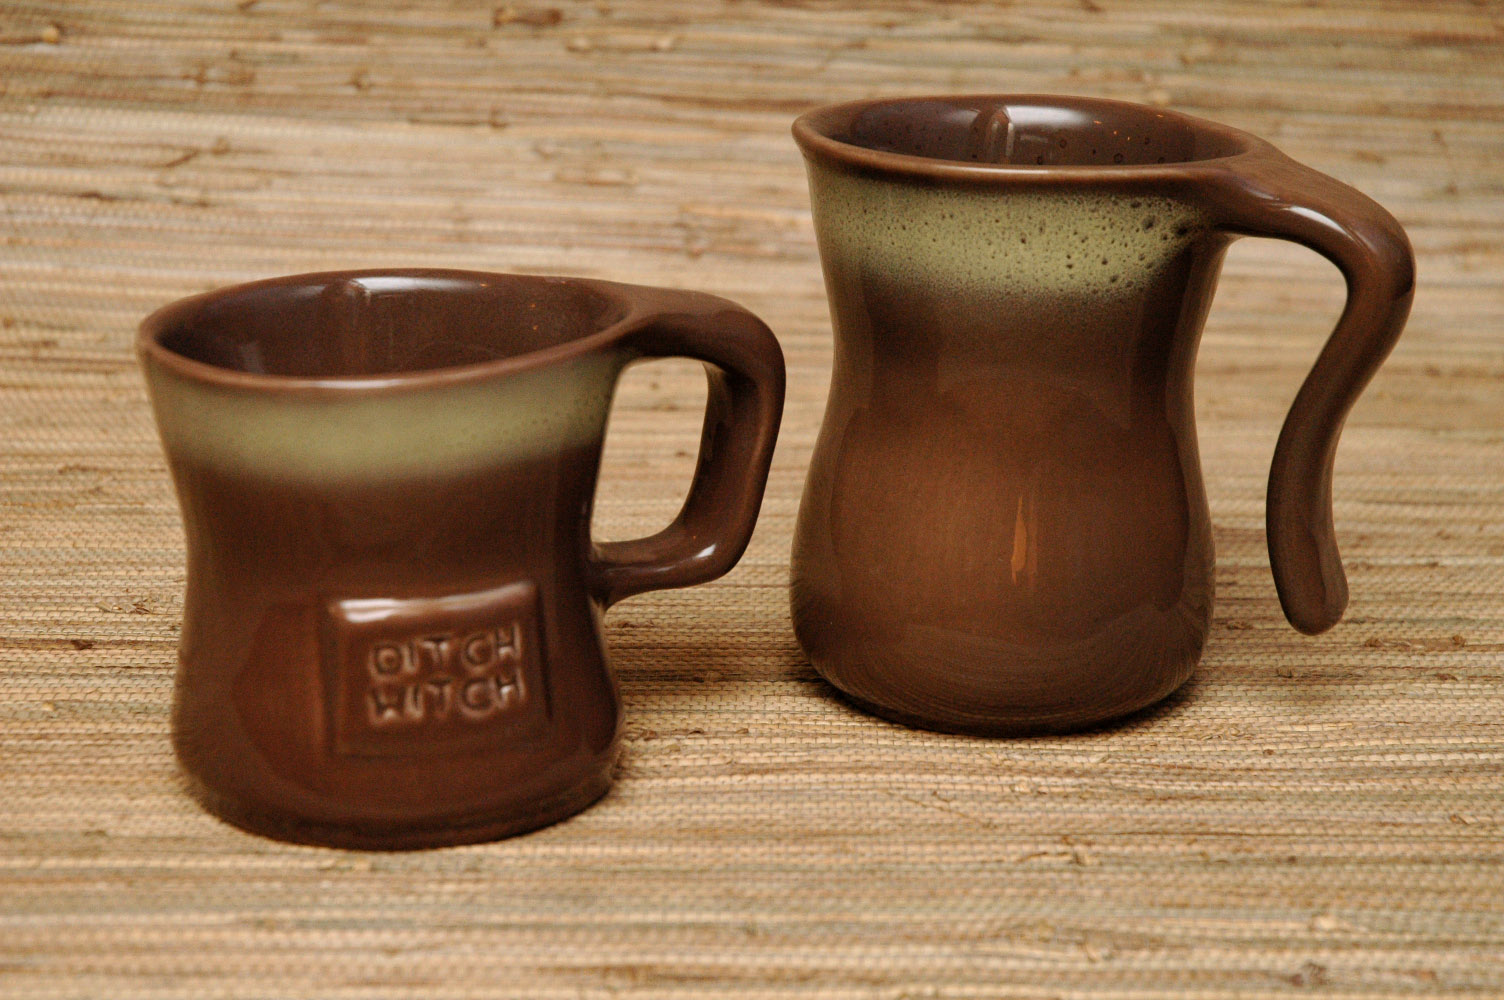 Tamac open & closed handle mugs